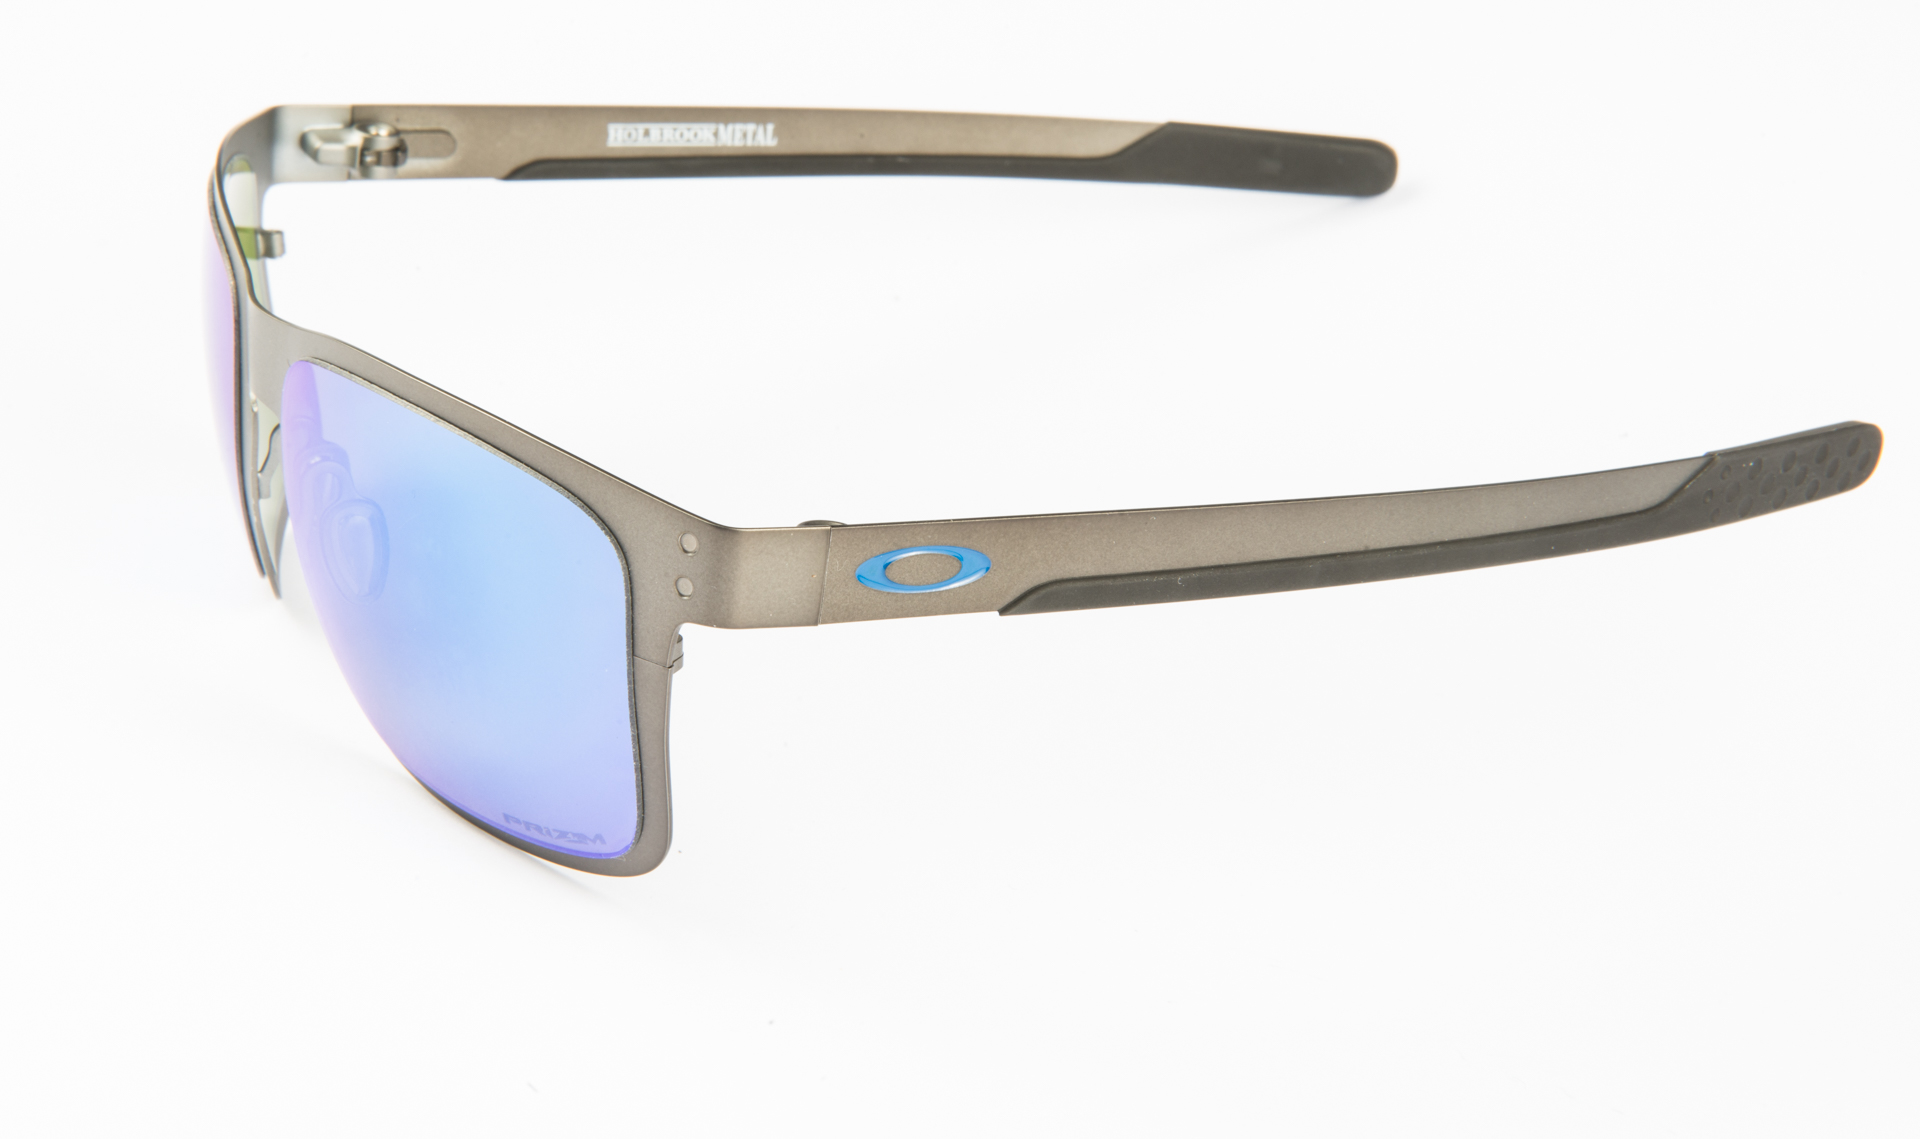 oakley17_18_of_48.jpg